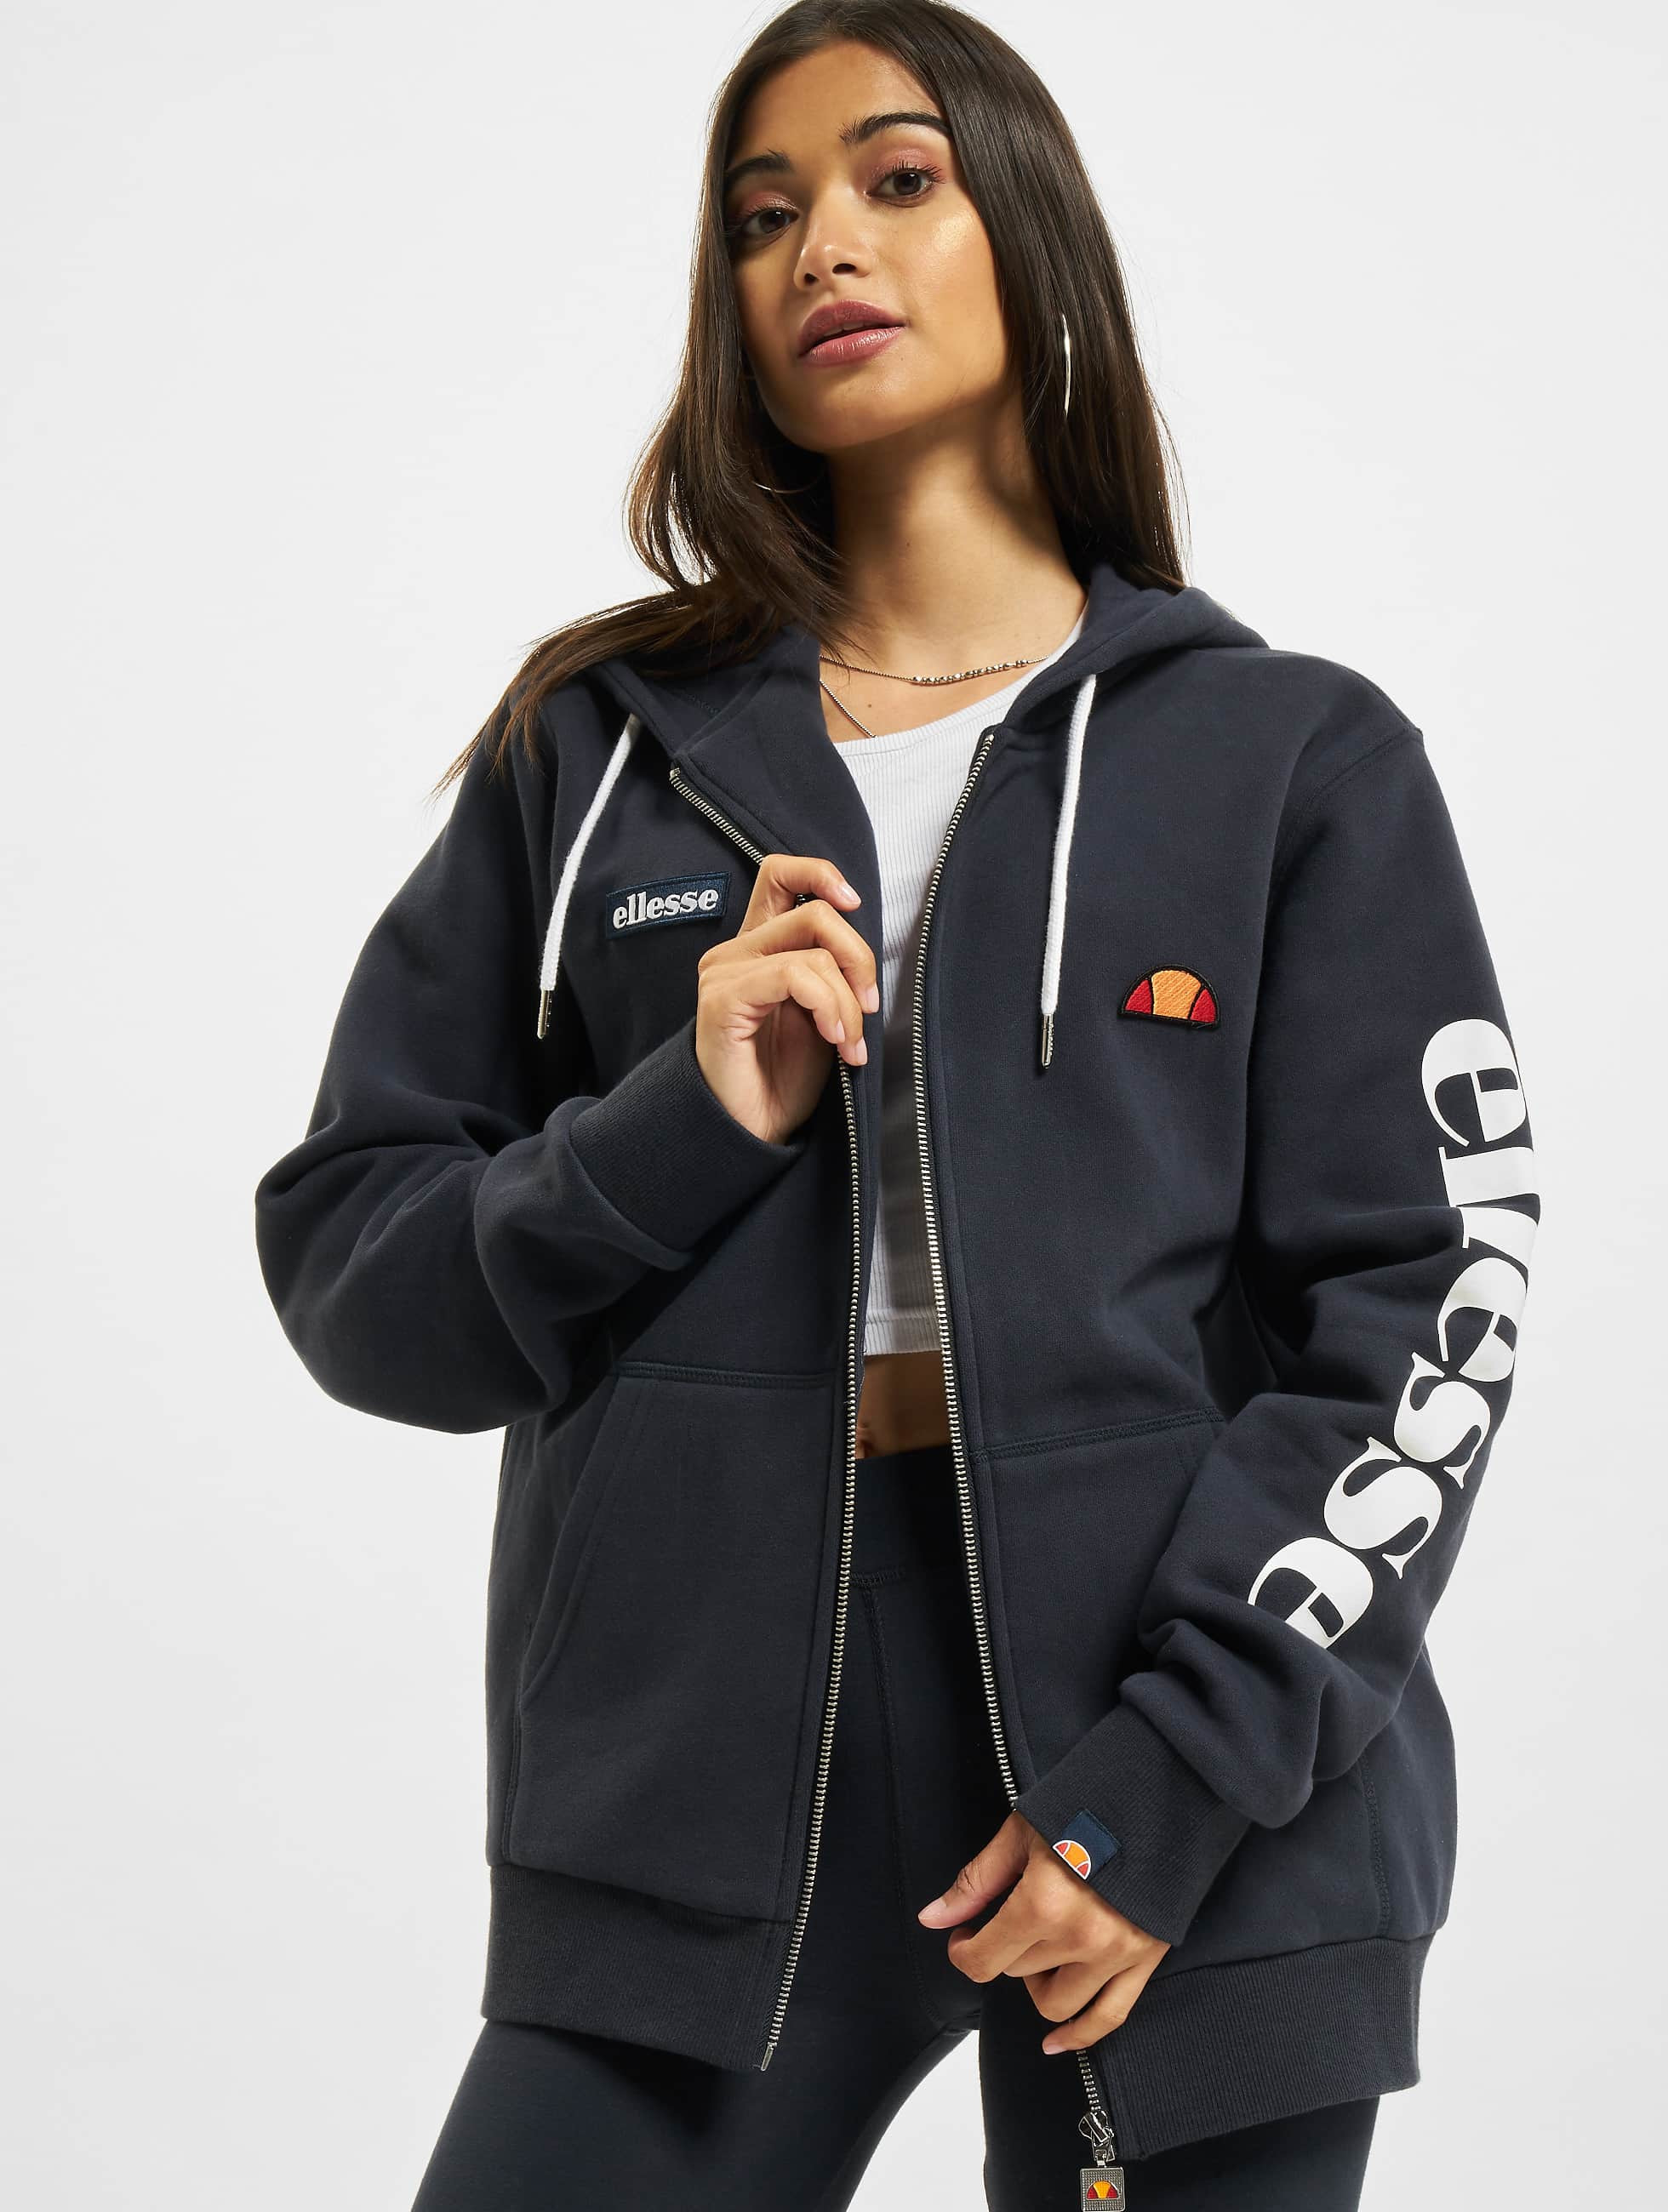 ellesse damen oberteile zip hoodie serinatas ebay. Black Bedroom Furniture Sets. Home Design Ideas